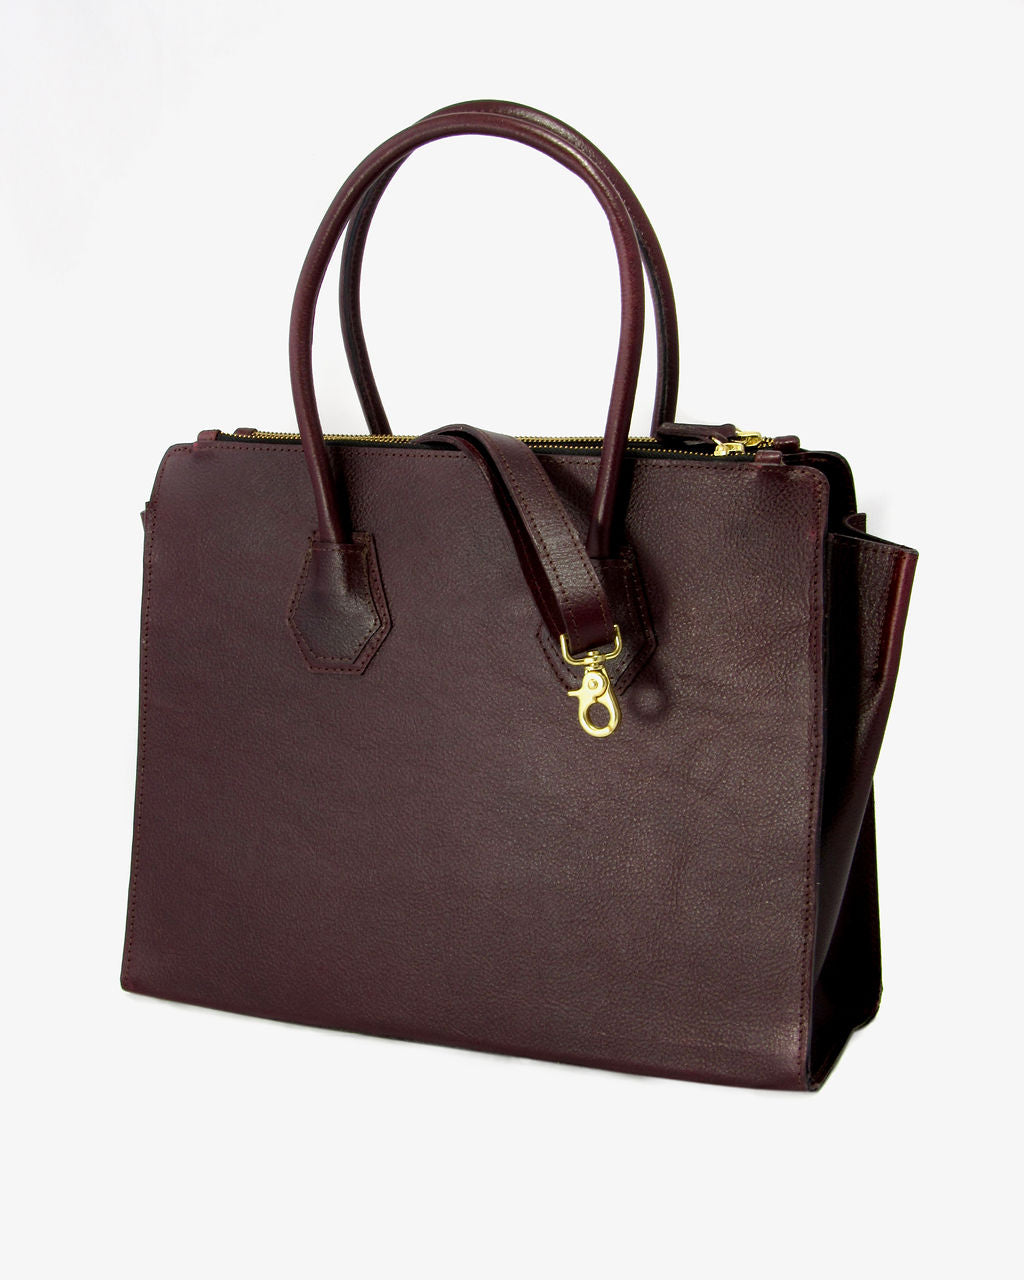 Handbag - Shoulder bag